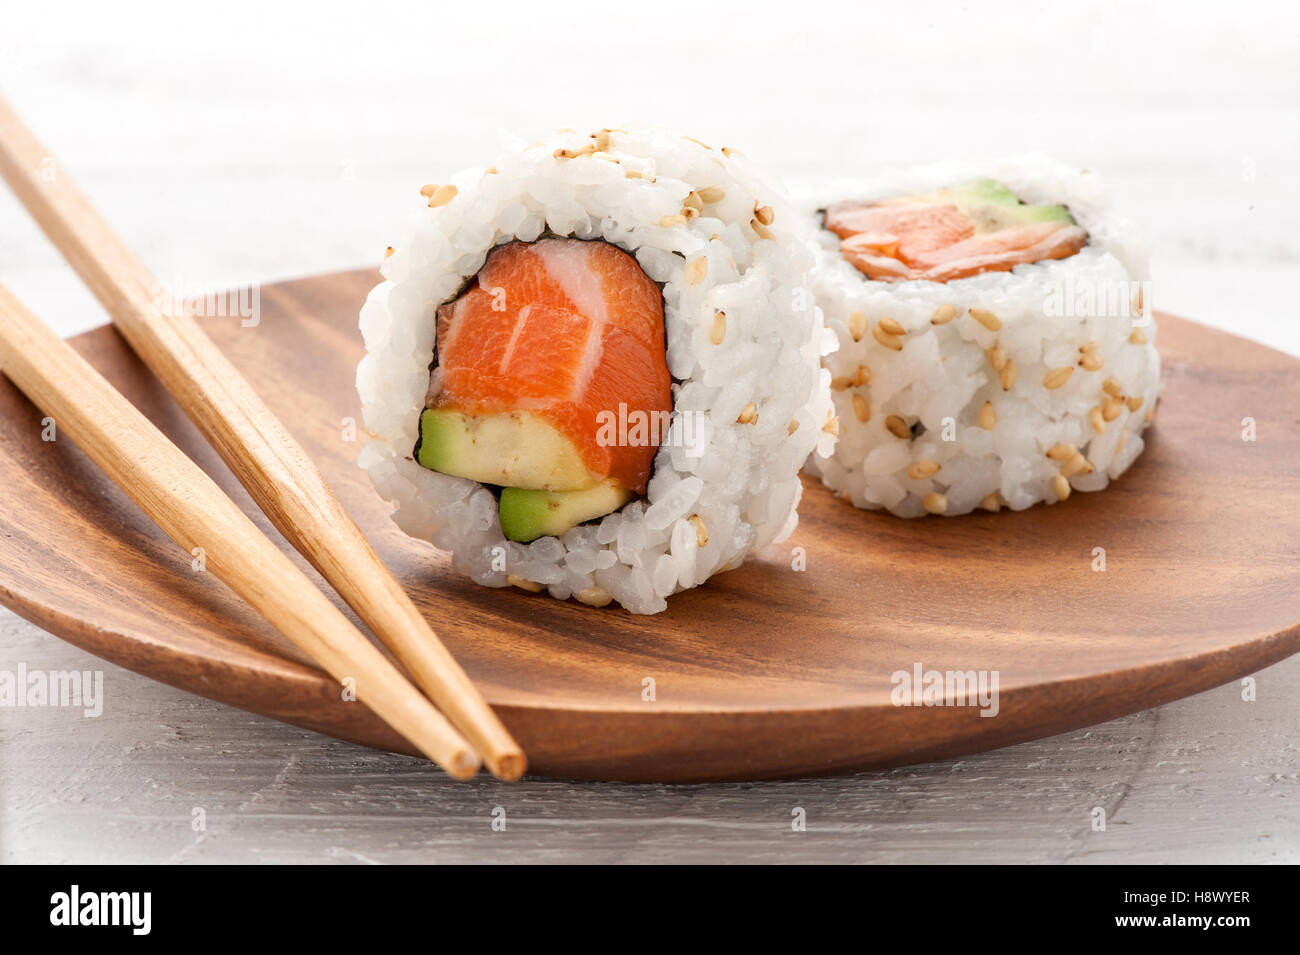 Two fresh salmon and avocado sushi uramaki served on a wooden plate with one standing upright to show the ingredients - Stock Image